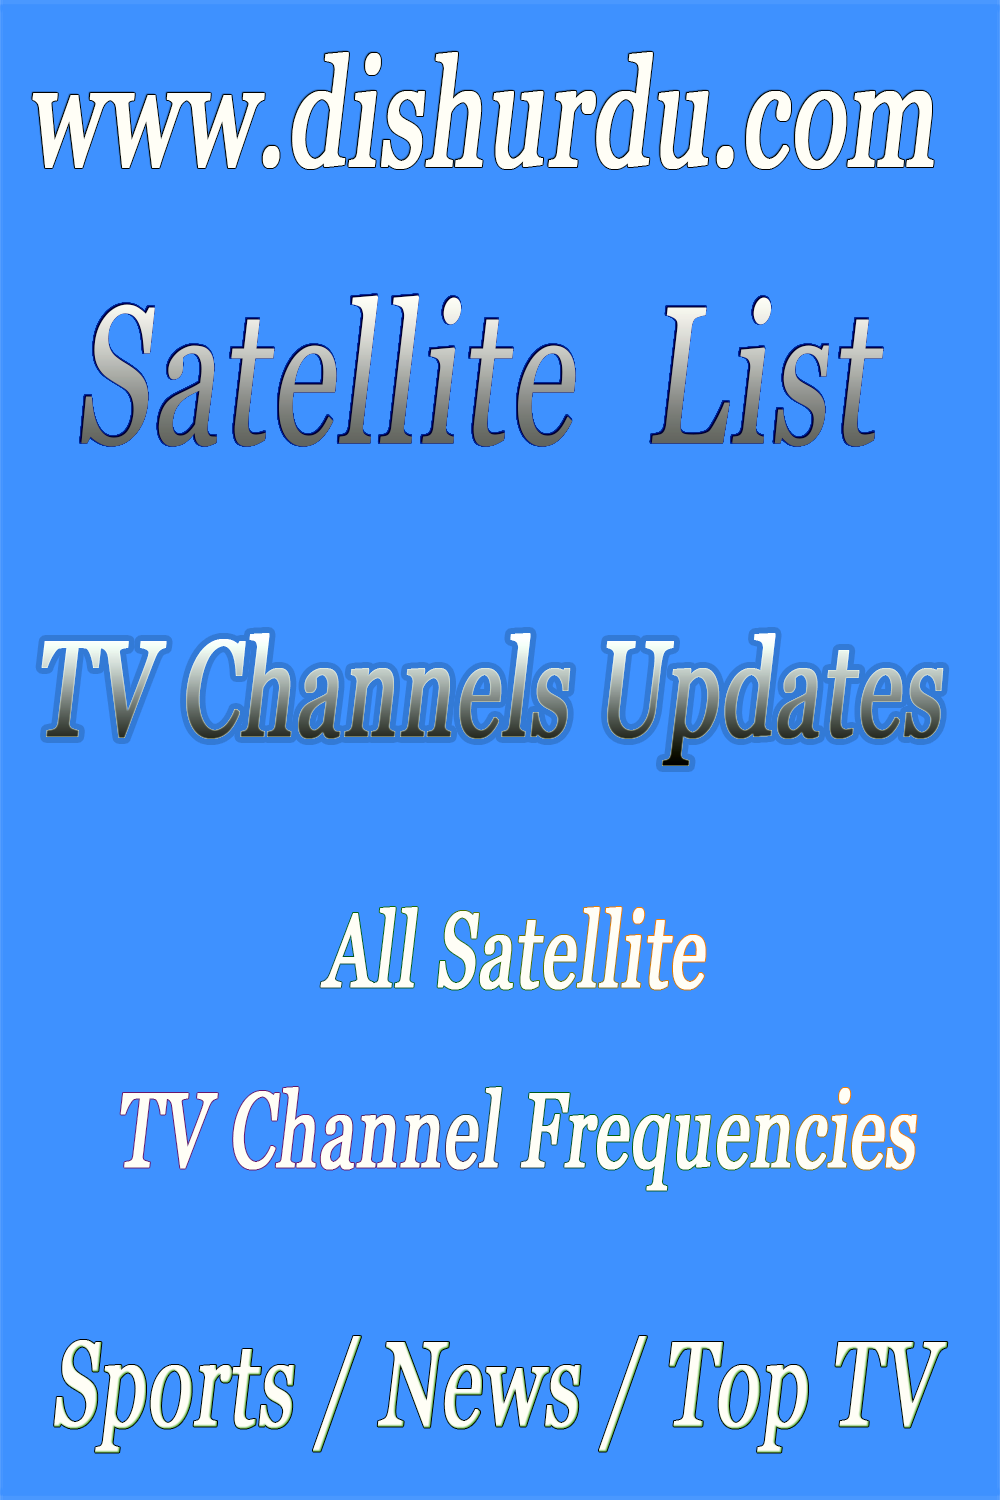 Satellite TV Channel: Frequencies Update DishUrdu